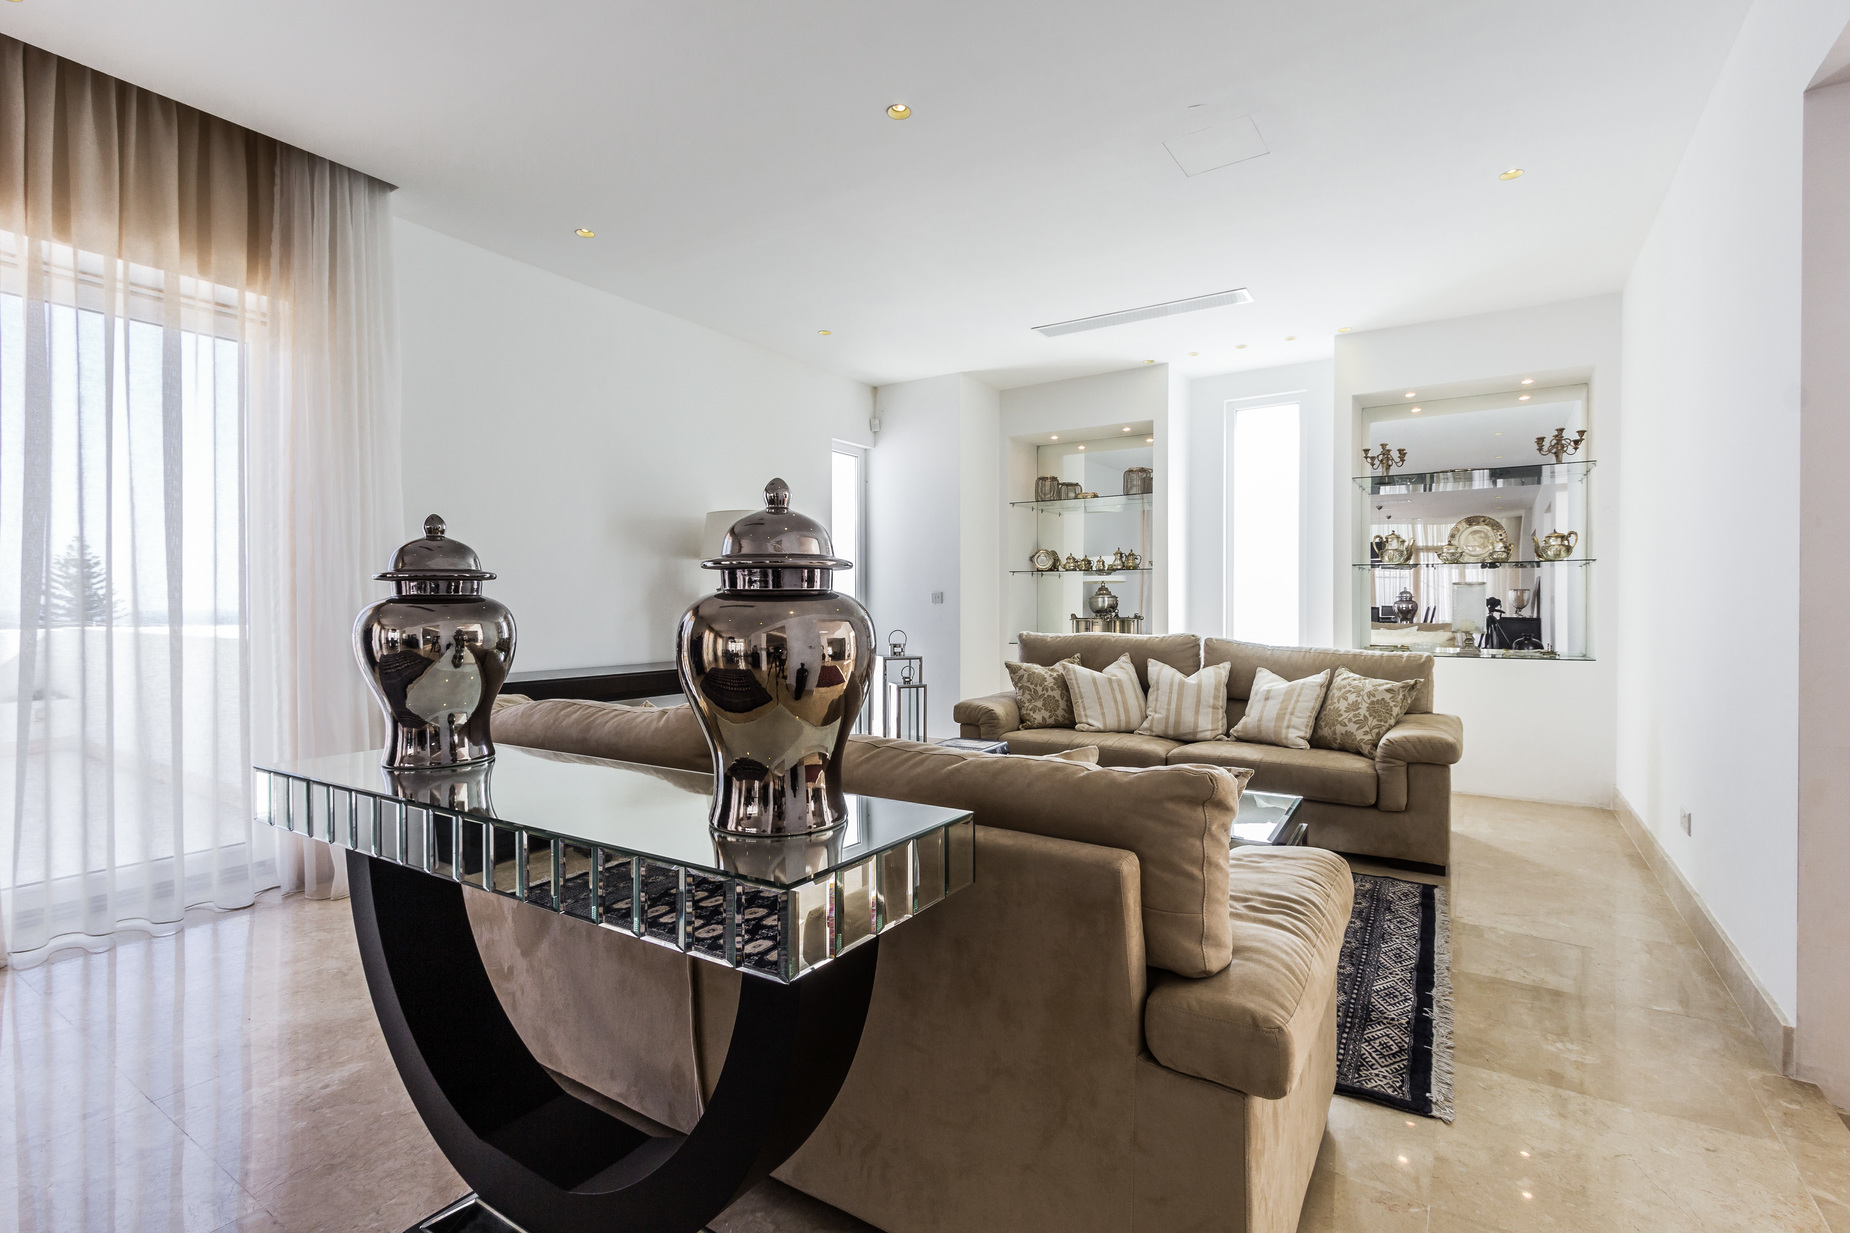 5 bed Villa For Rent in Madliena, Madliena - thumb 3